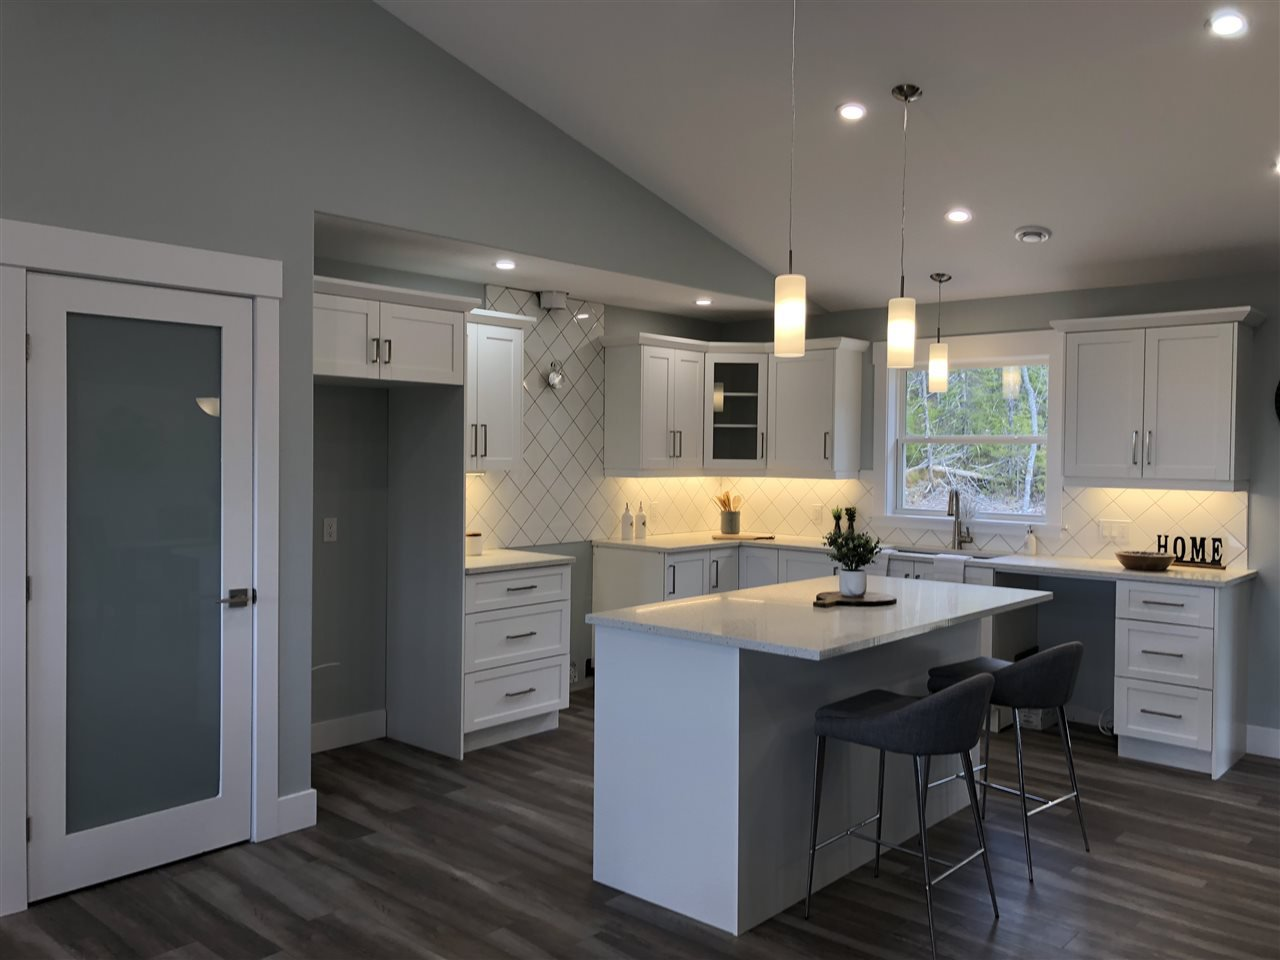 Photo 9: Photos: Lot 678 - 215 Confederation Avenue in Fall River: 30-Waverley, Fall River, Oakfield Residential for sale (Halifax-Dartmouth)  : MLS®# 201913206